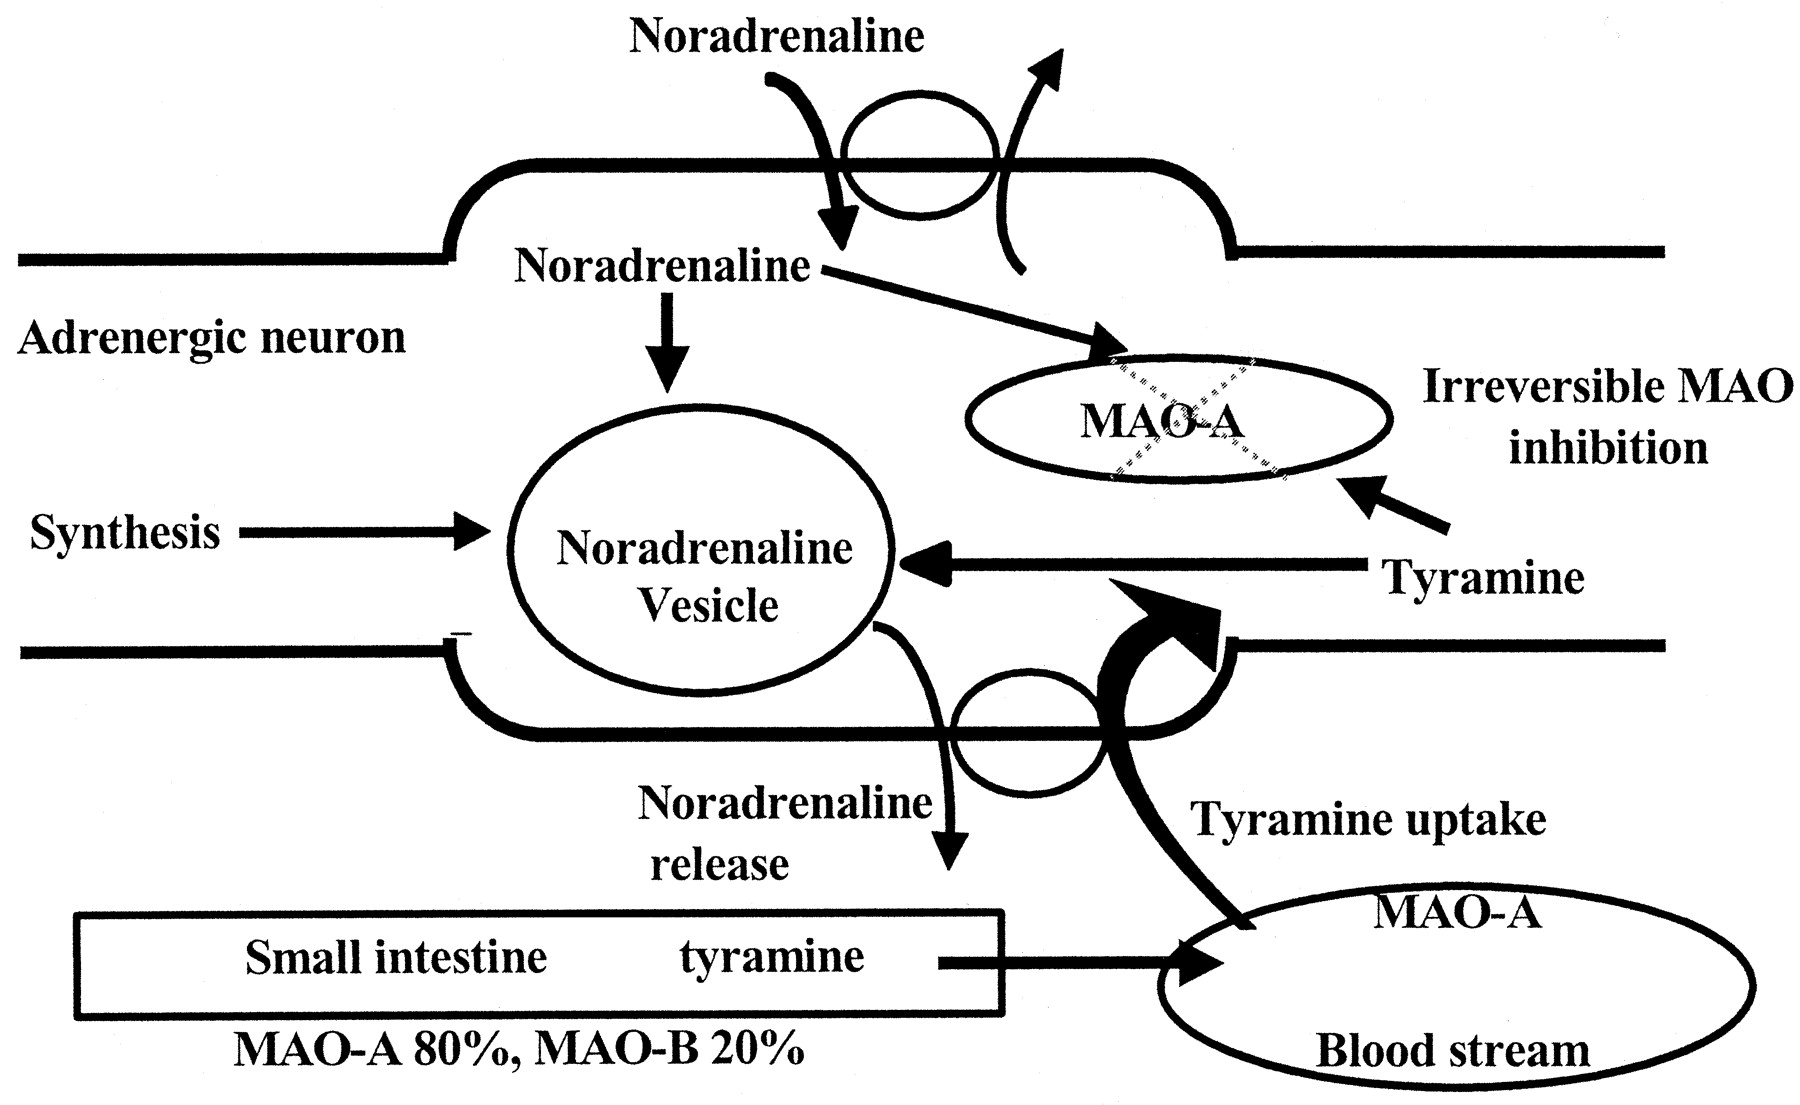 a review of the mechanisms and role of monoamine oxidase inhibitors